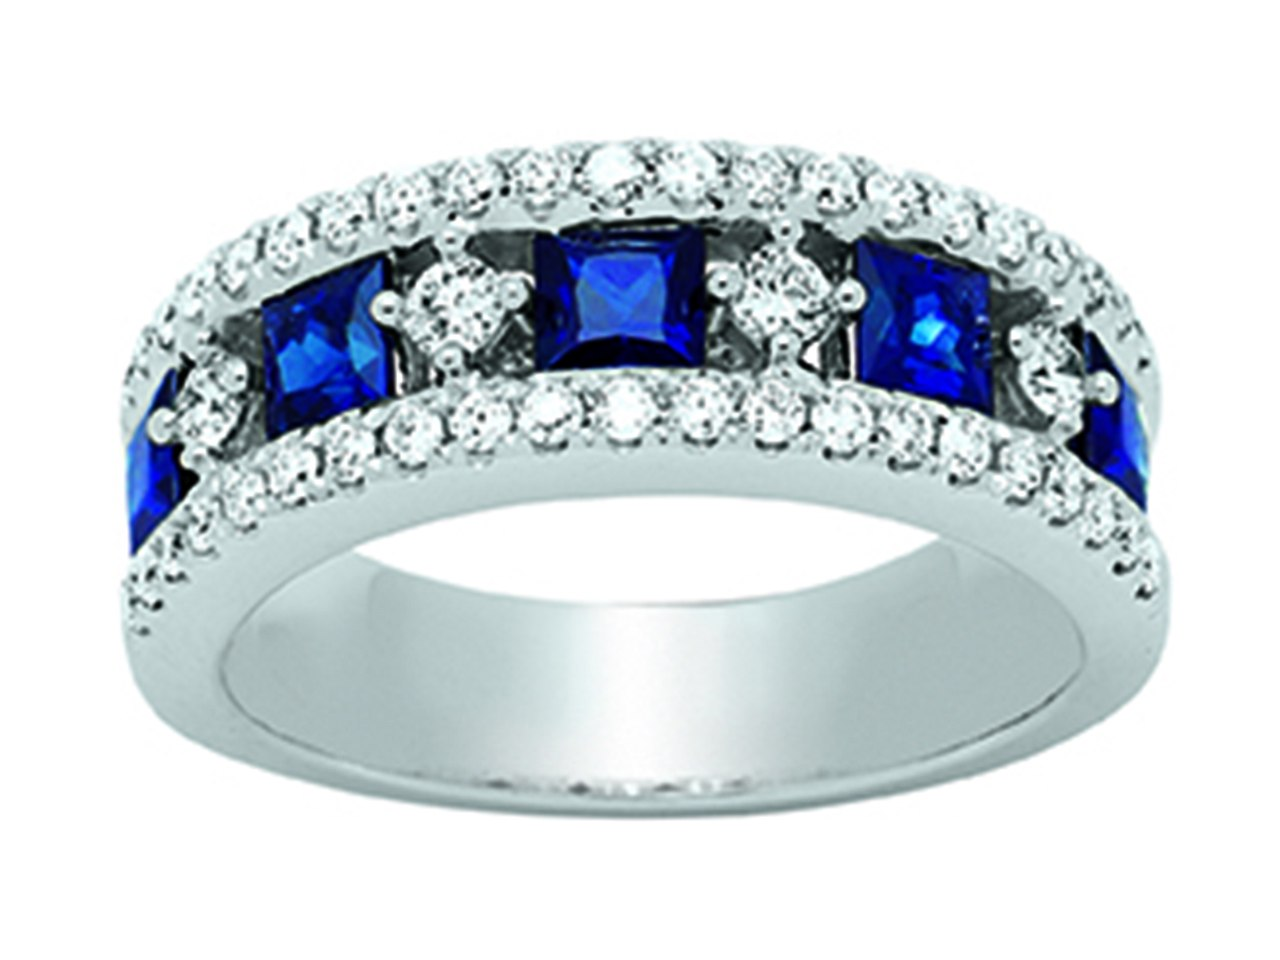 Bague Or girs 18k, saphirs 1,49ct, diamants 0,57ct, doigt 54